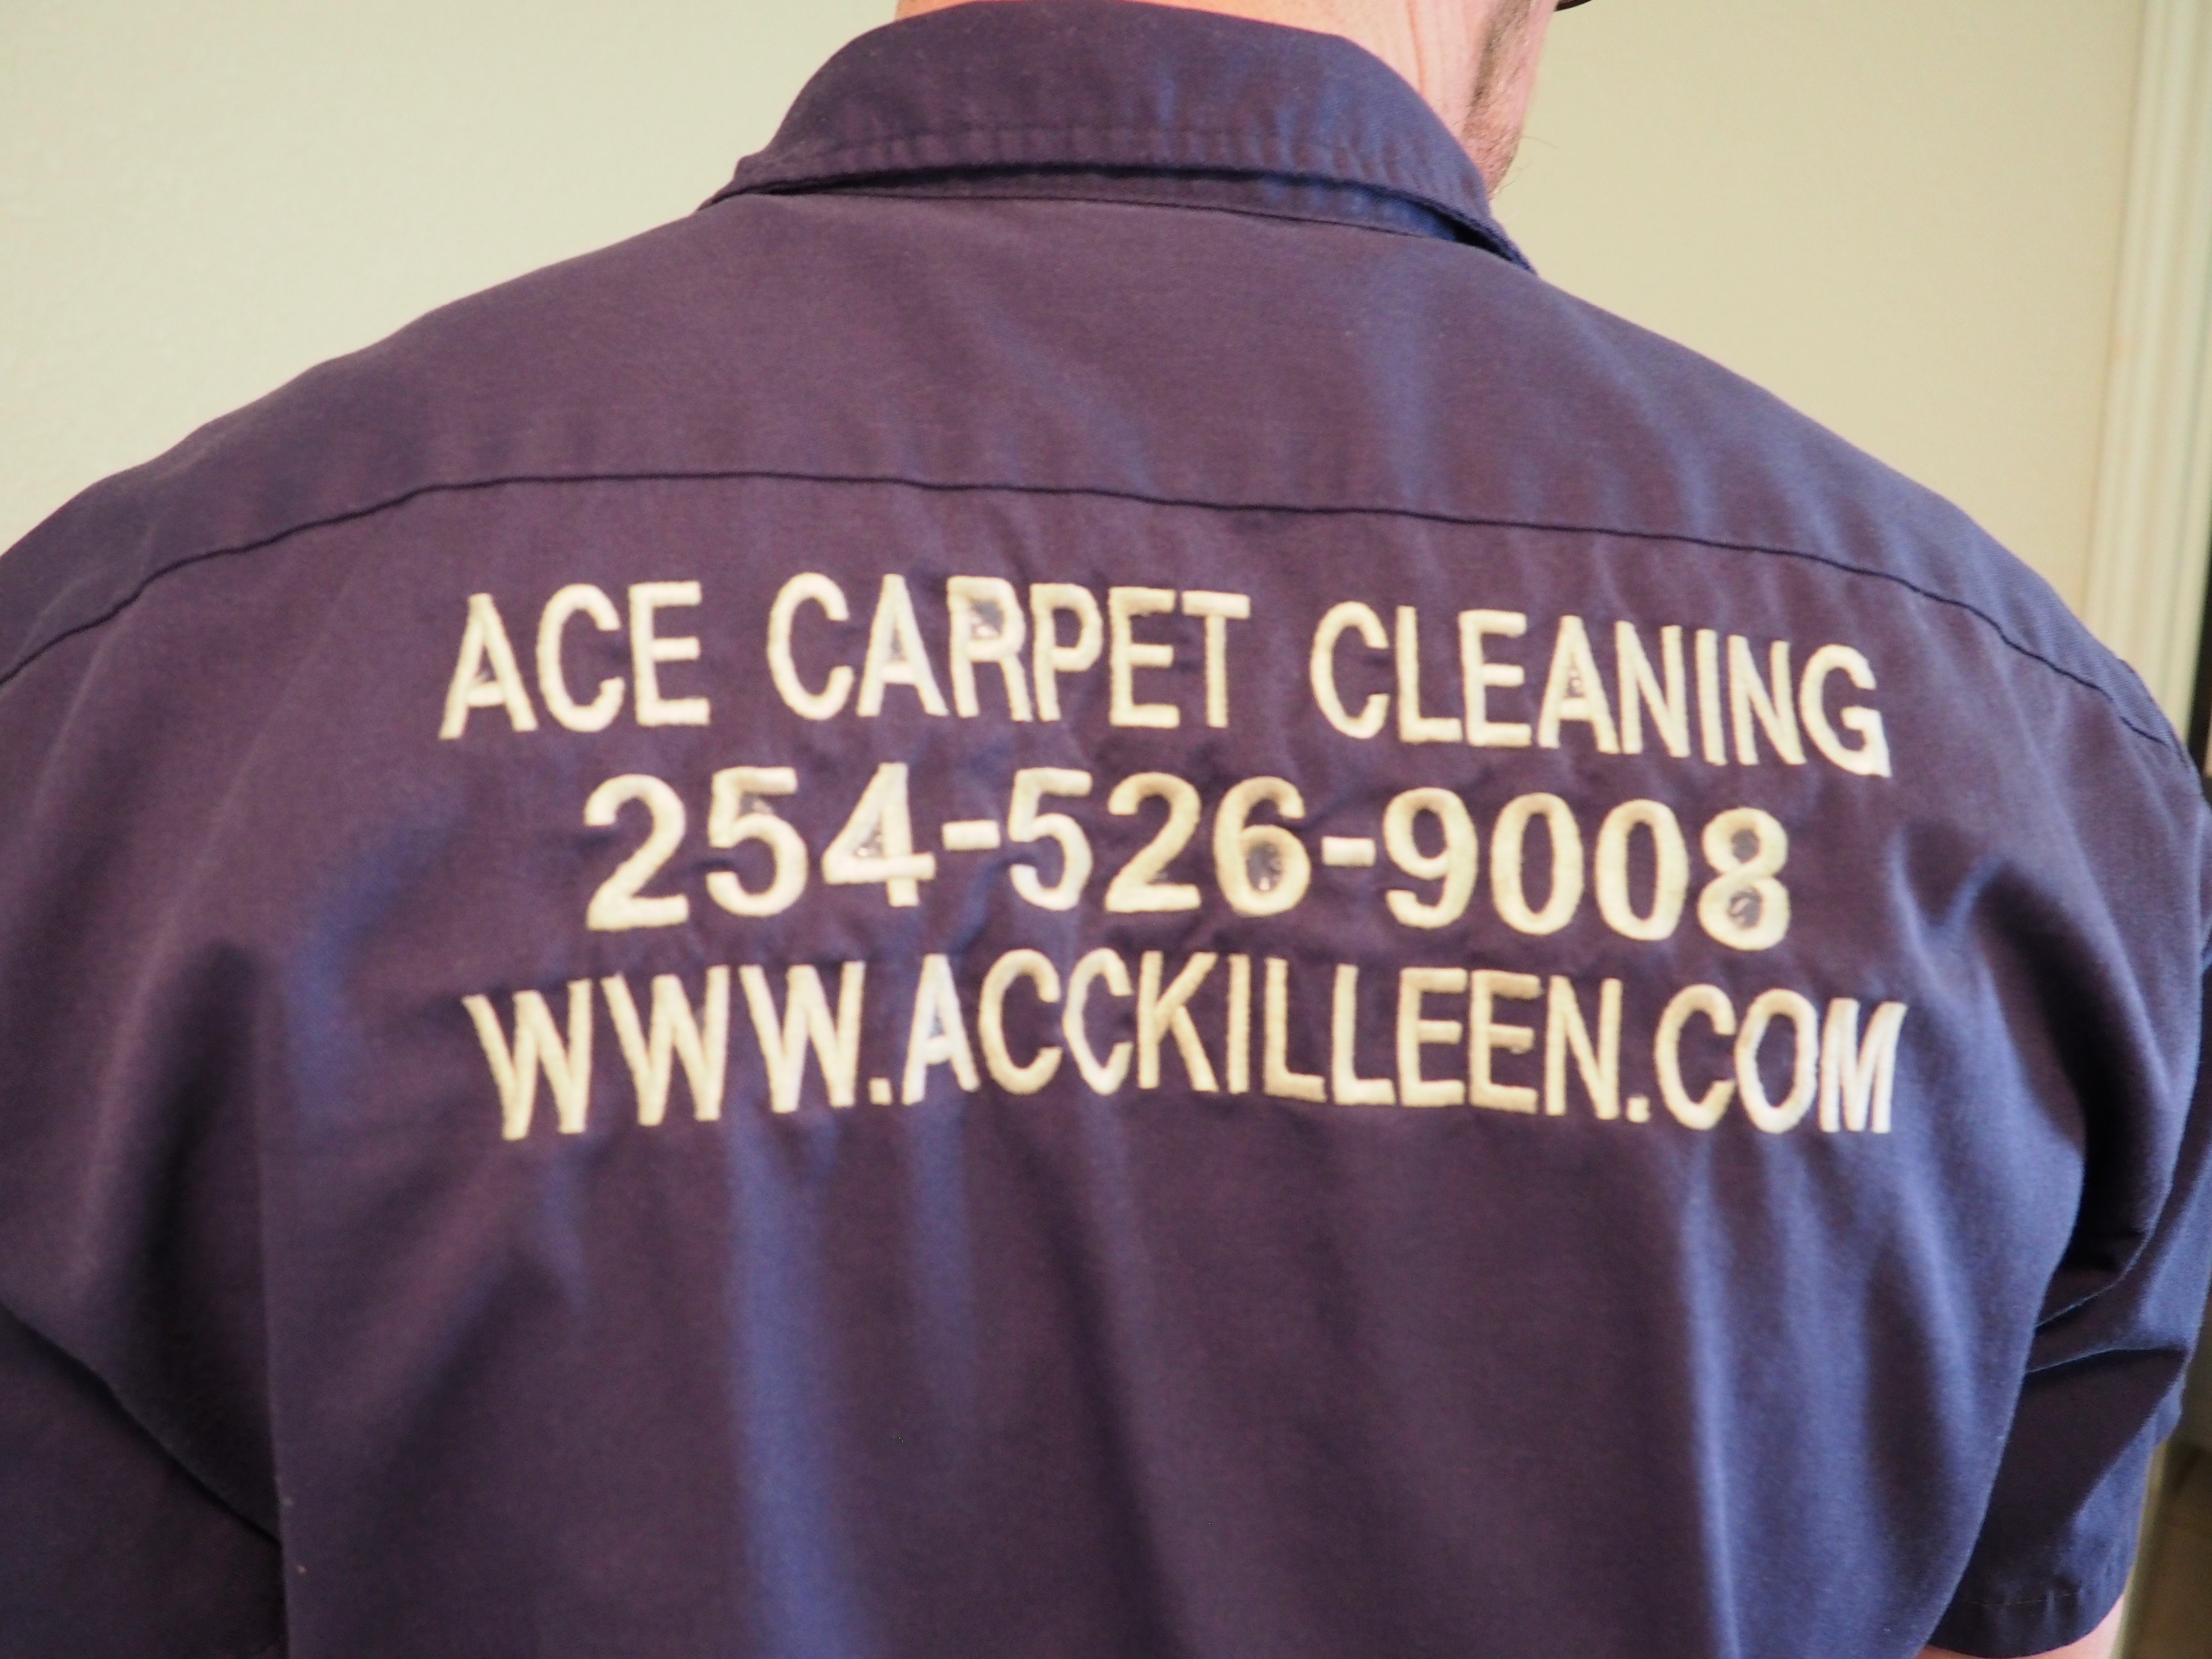 Ace Carpet Cleaning Gallery Image Killeen Texas Fort Hood Phone